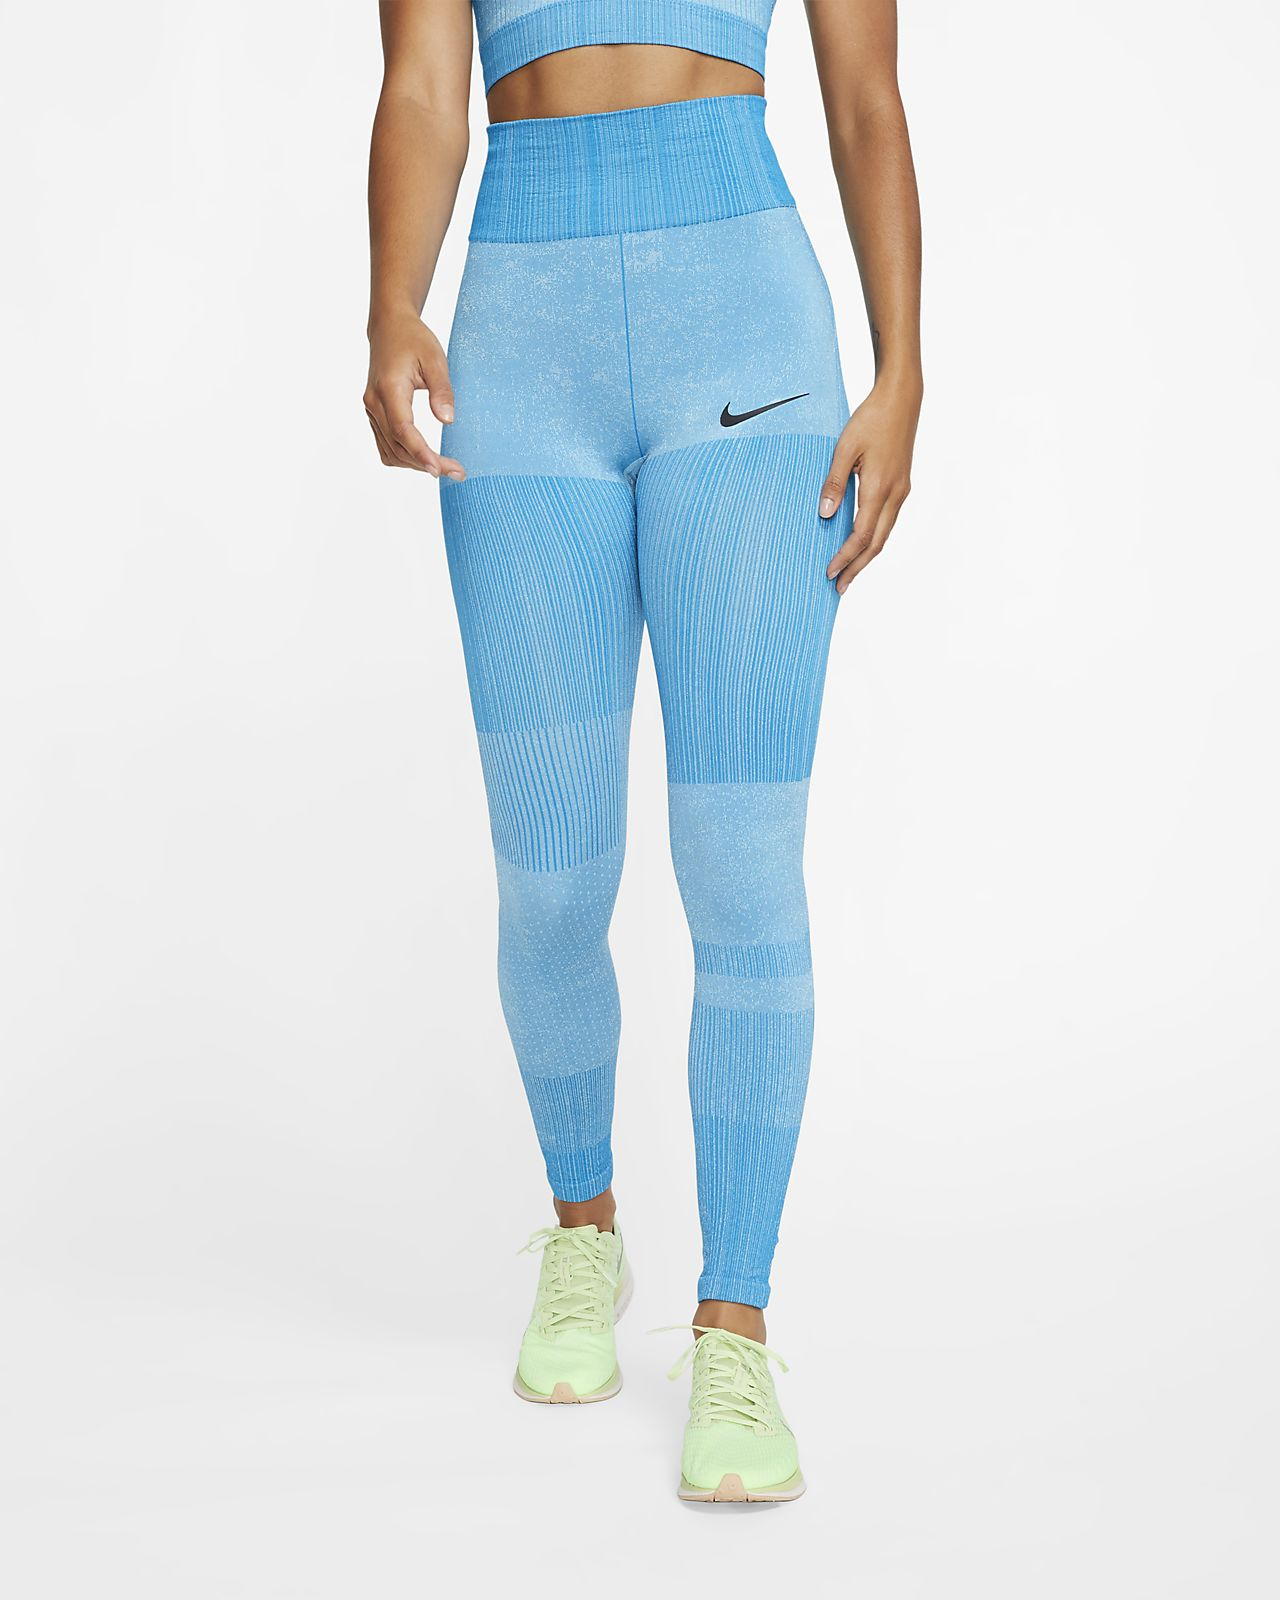 Nike City Ready Women's Knit Training Tights